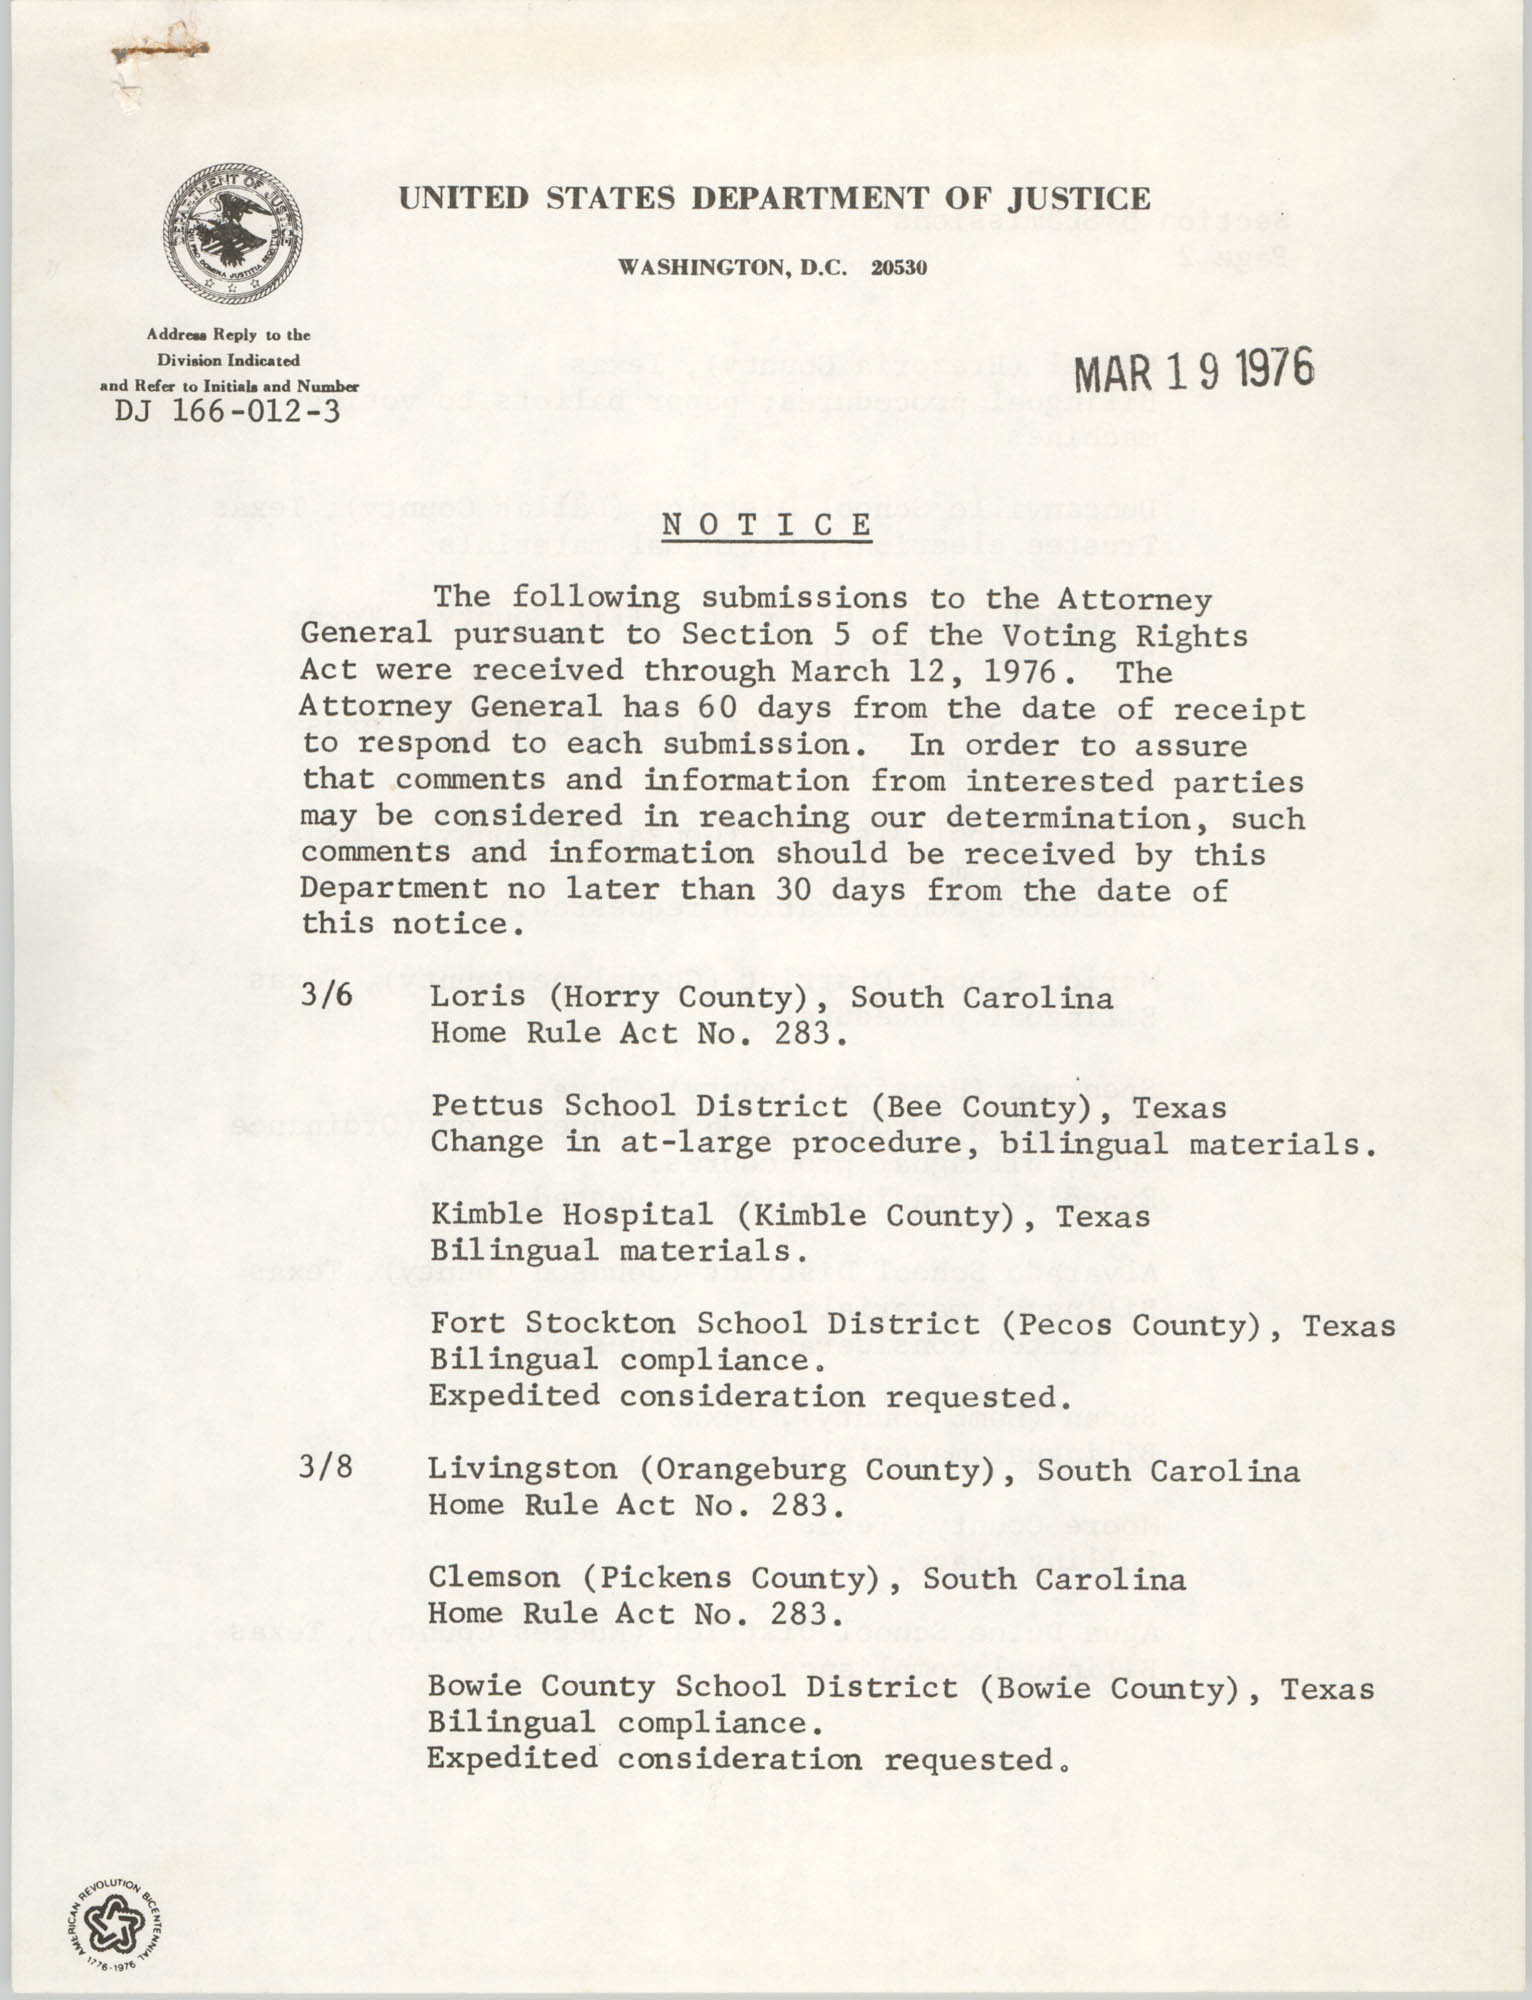 United States Department of Justice Notice, March 19, 1976